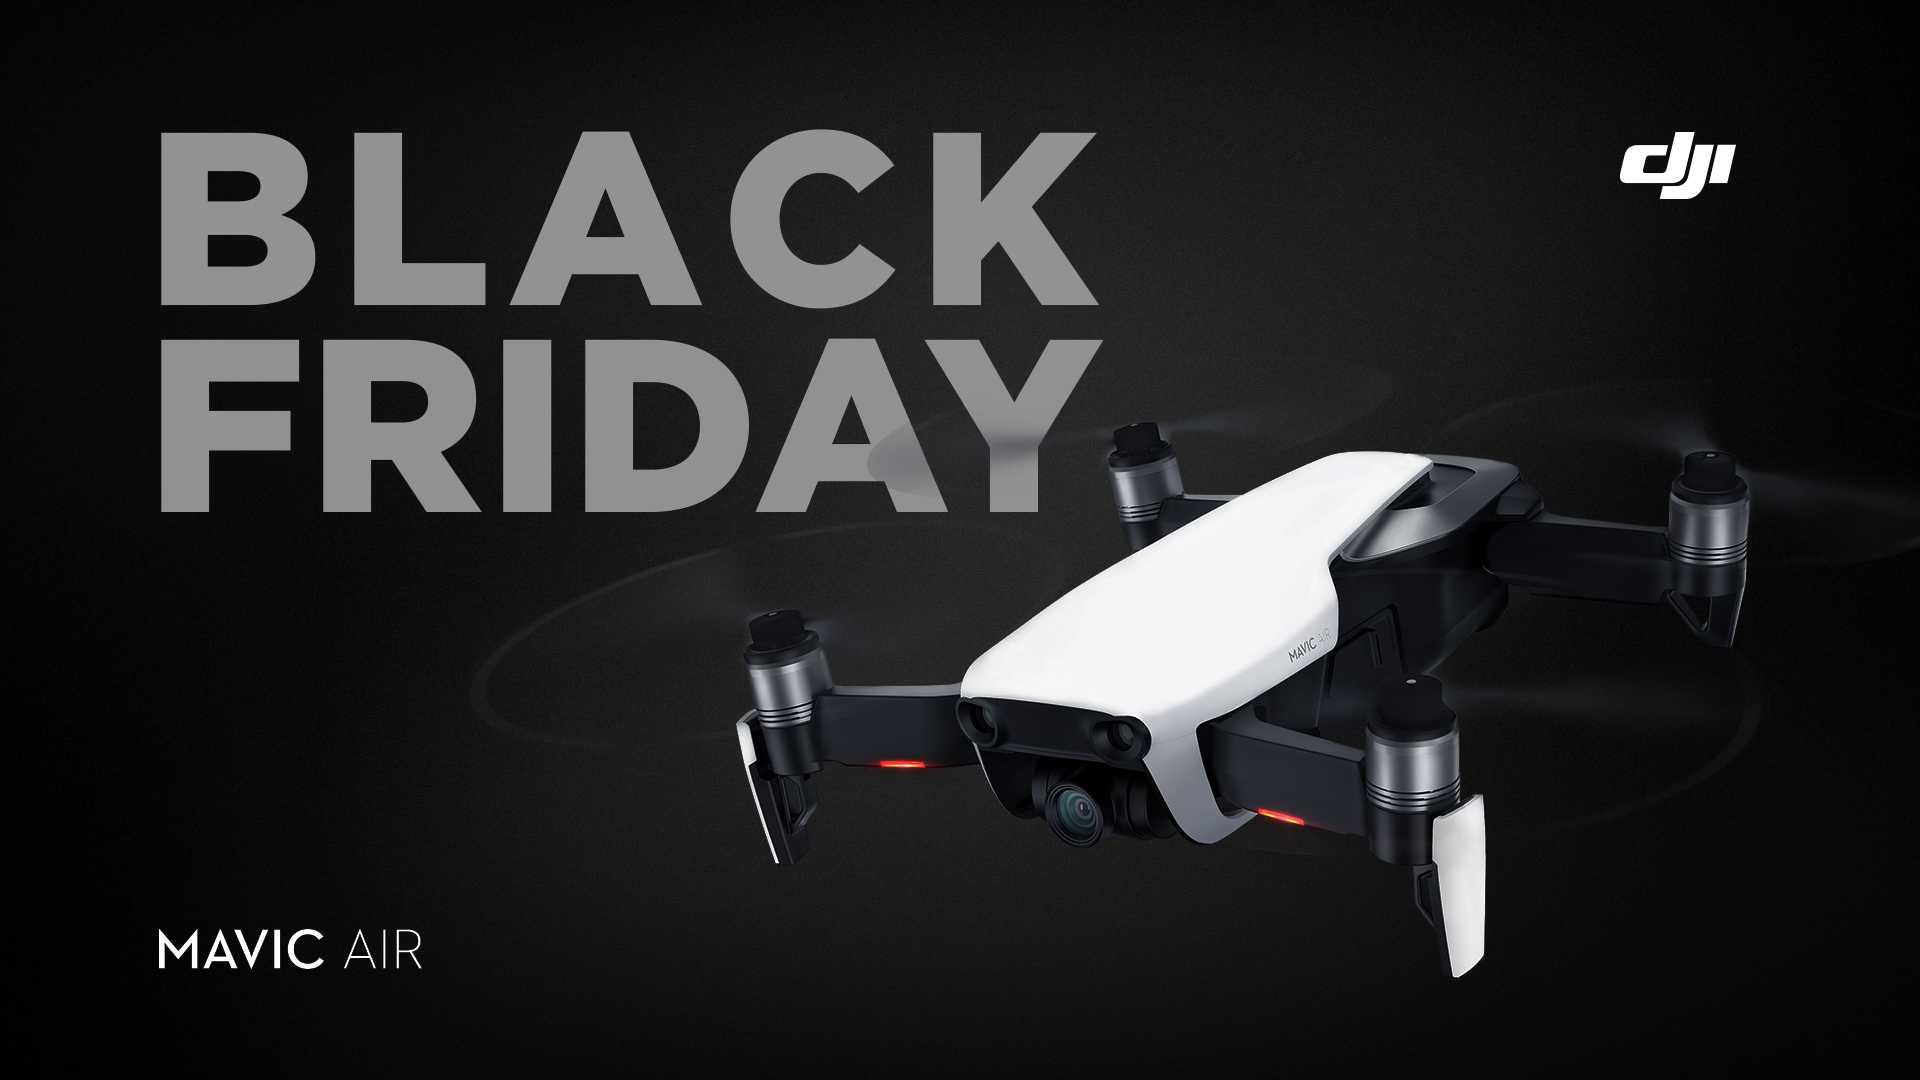 dji-mavic-air-photopoint-black-friday